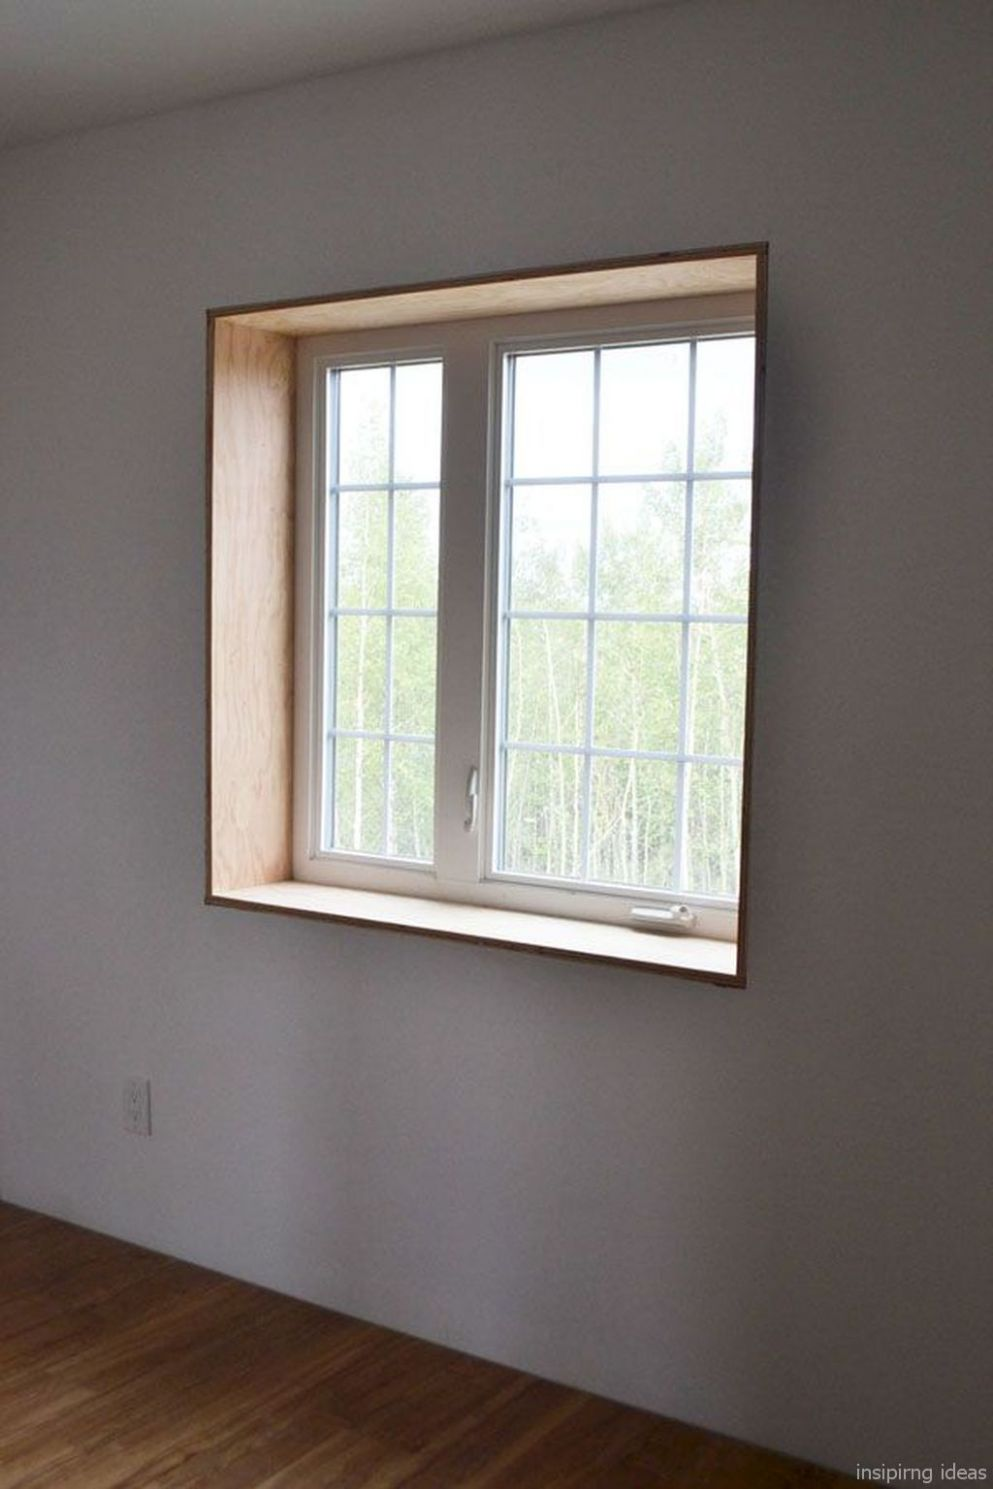 Modern Window Trim Design Ideas 8 (With images) | Interior window ..